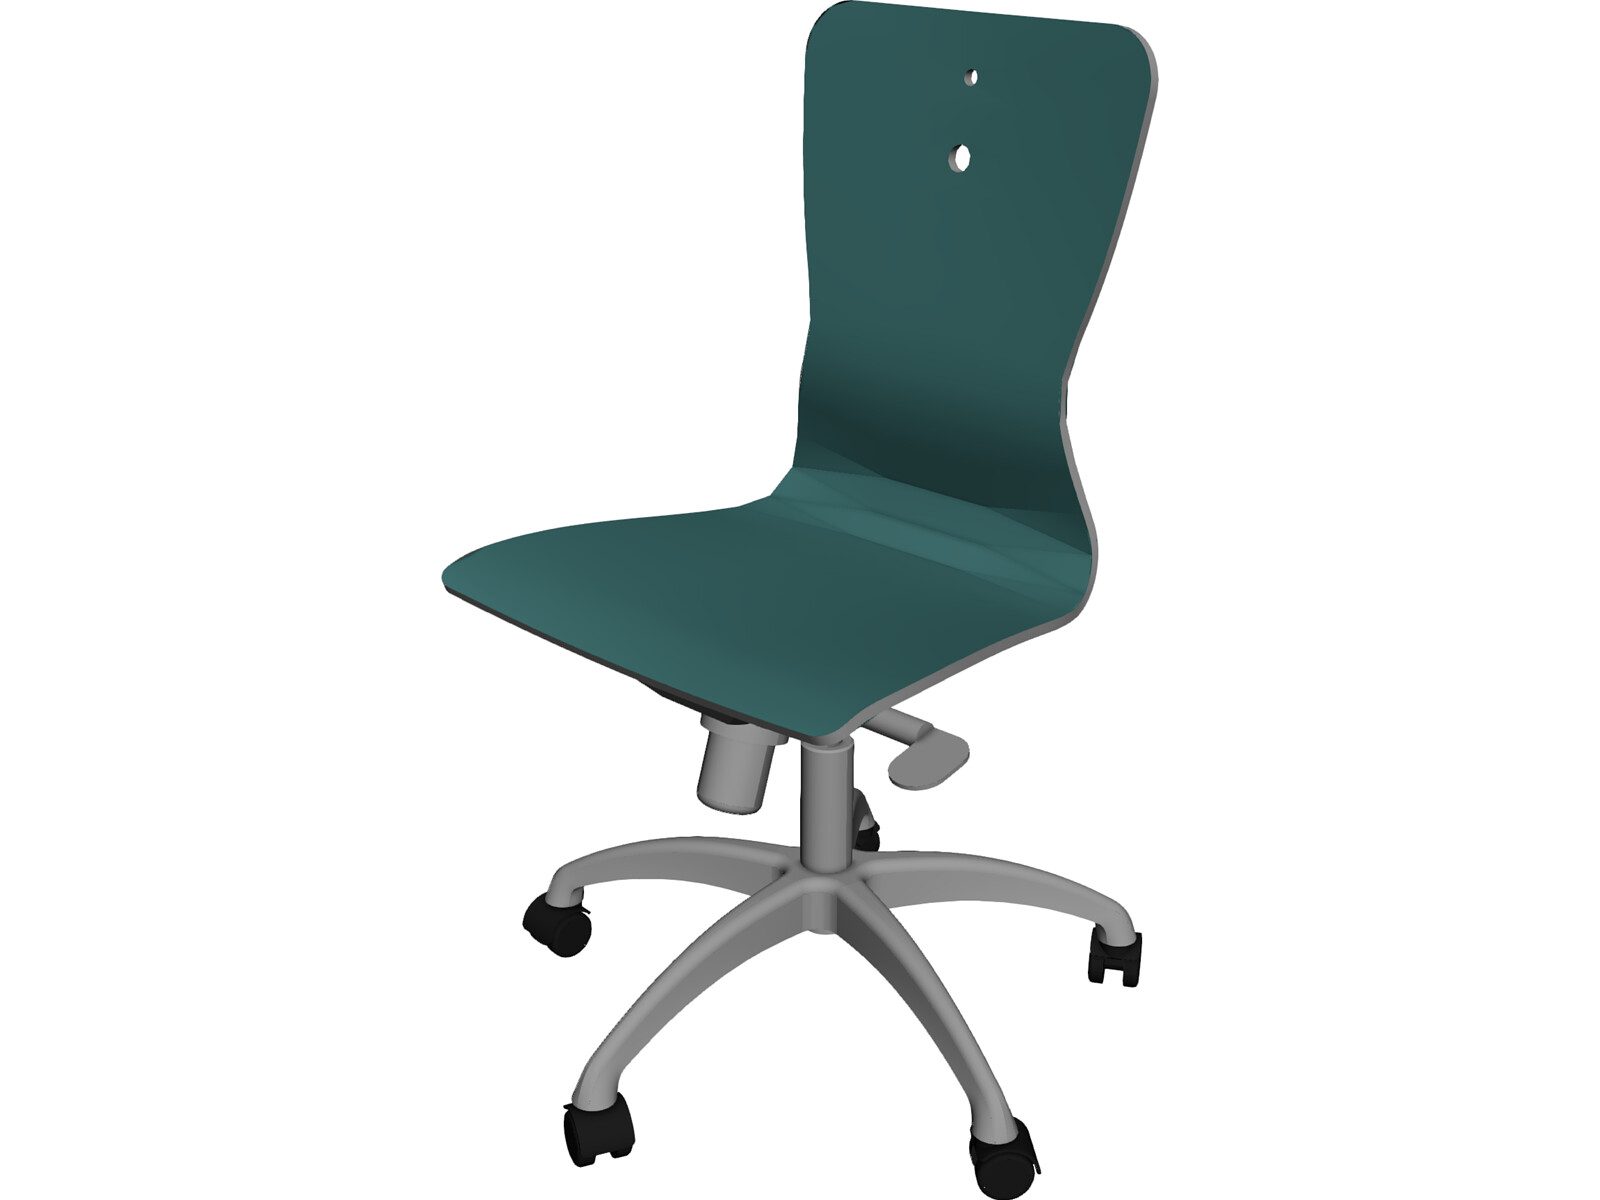 3d office chair model for maya for Chair 3d model maya